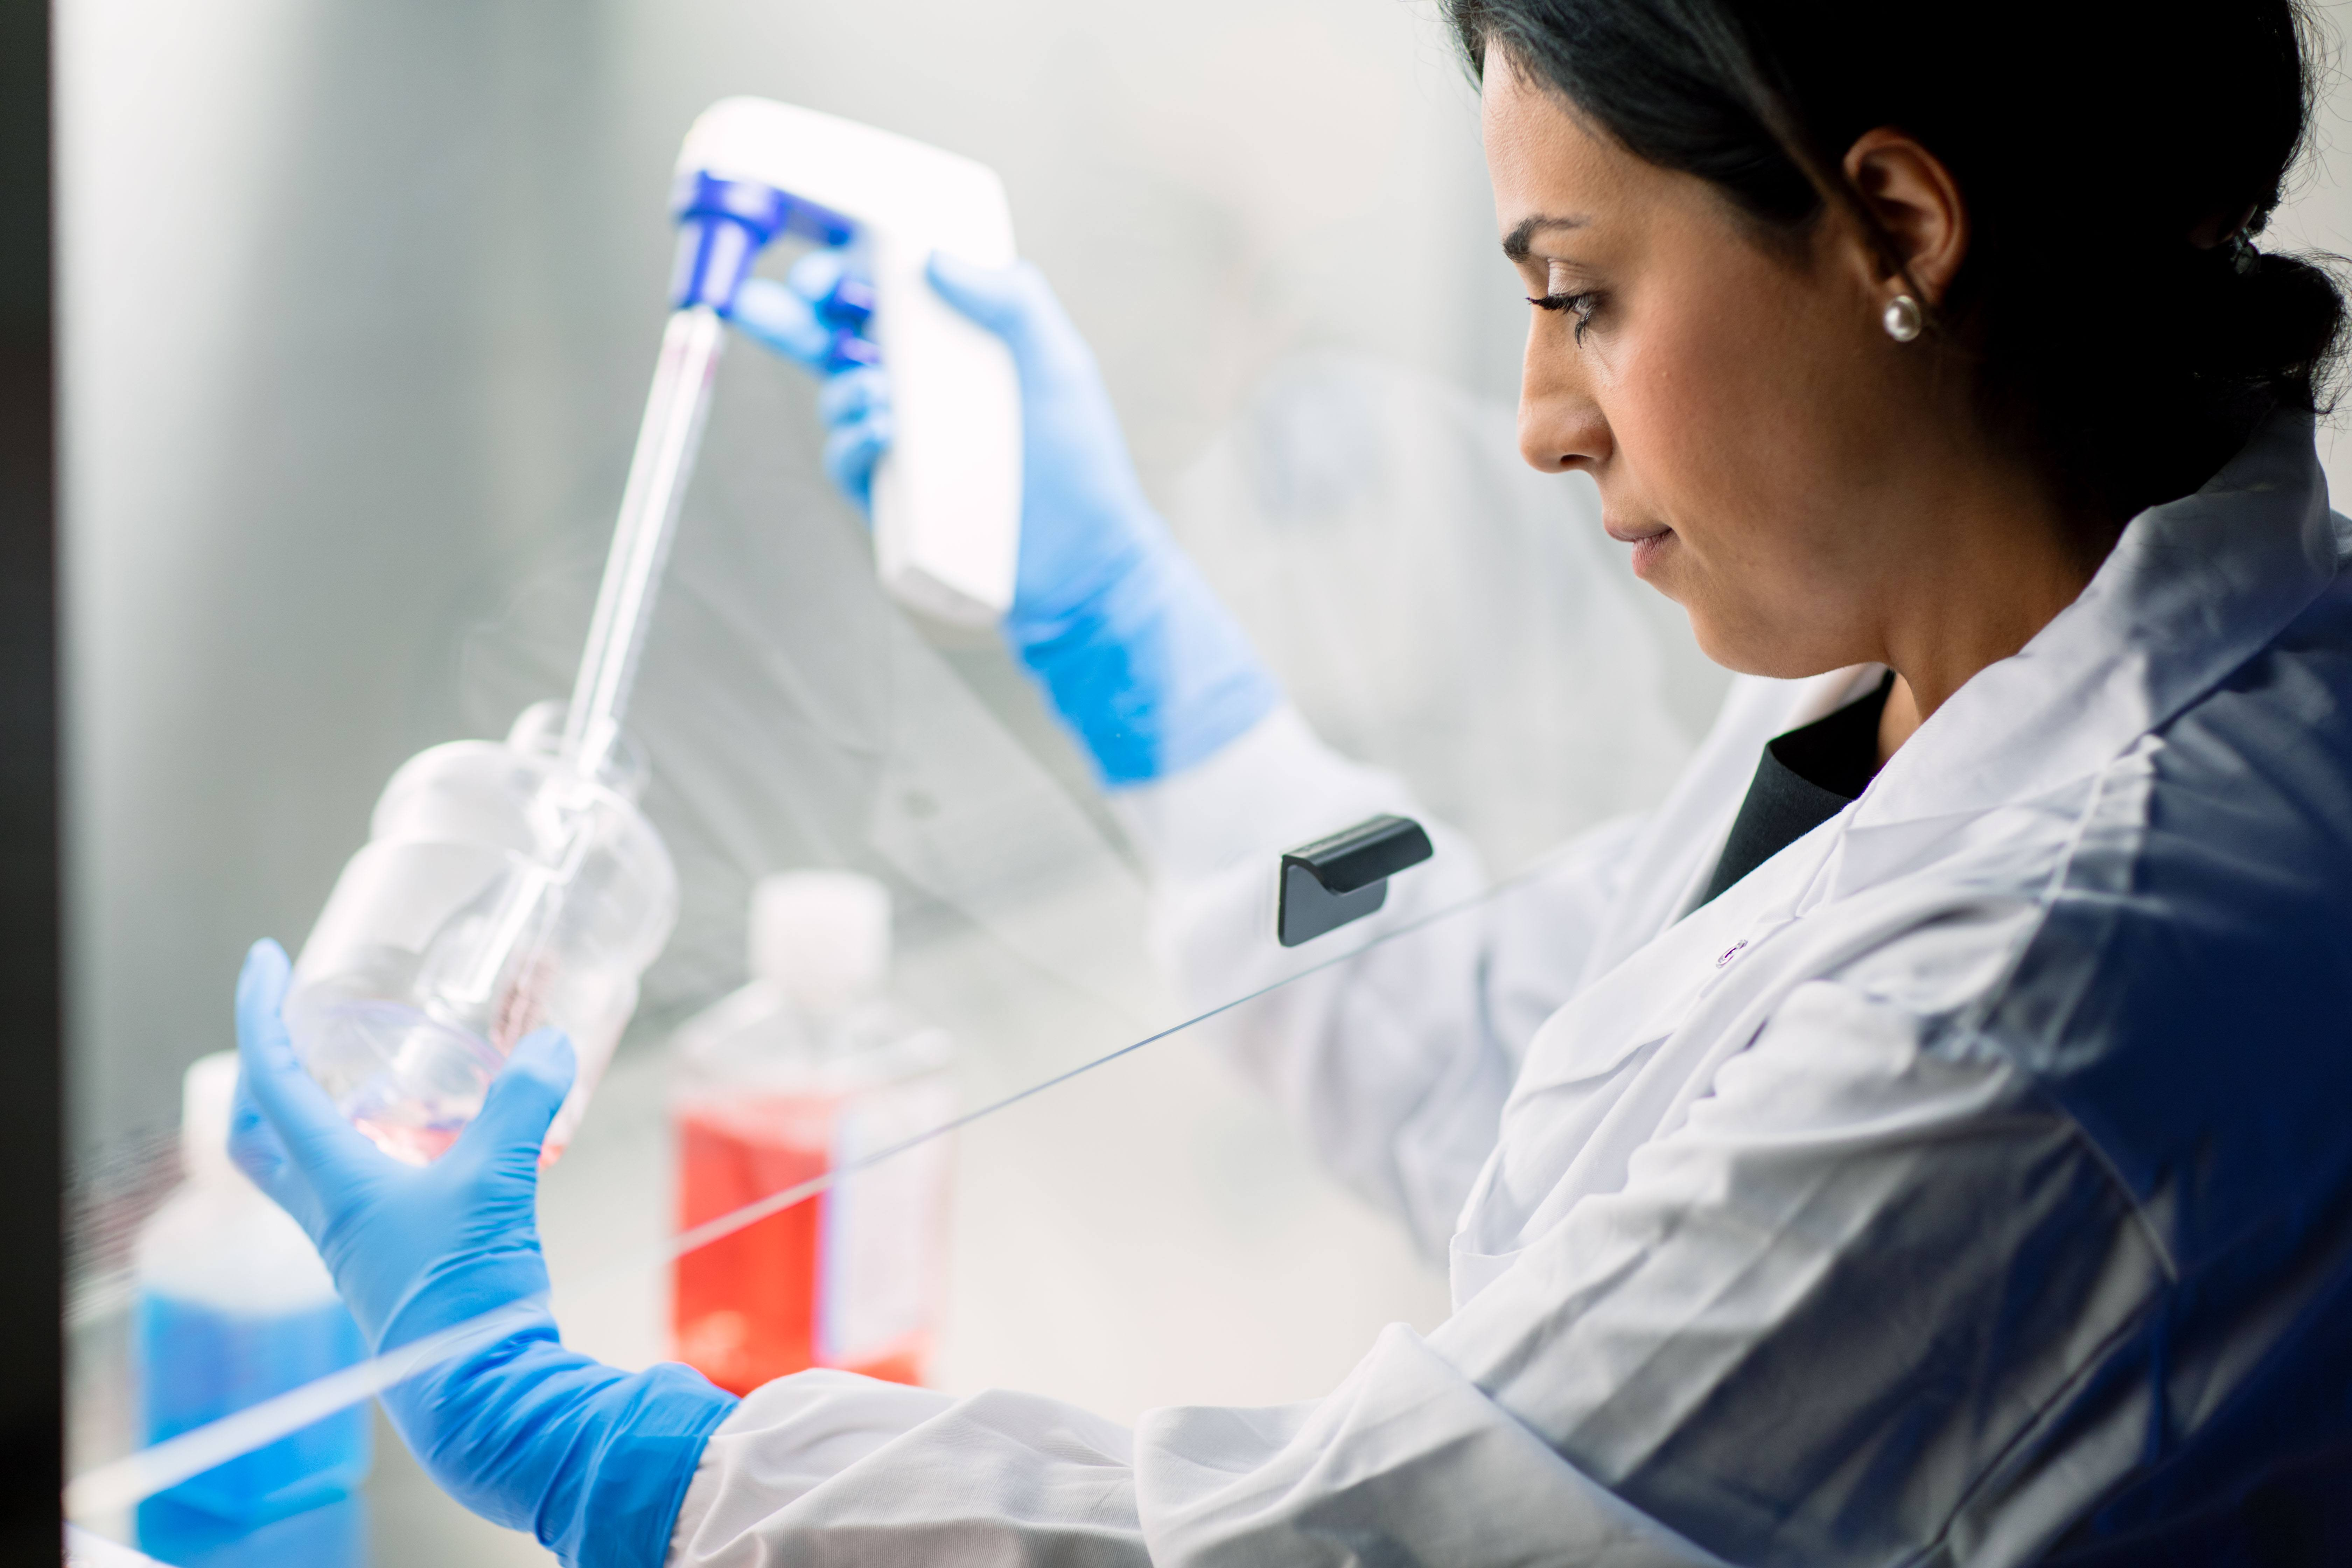 regenerative medicine researcher pipetting stem cells